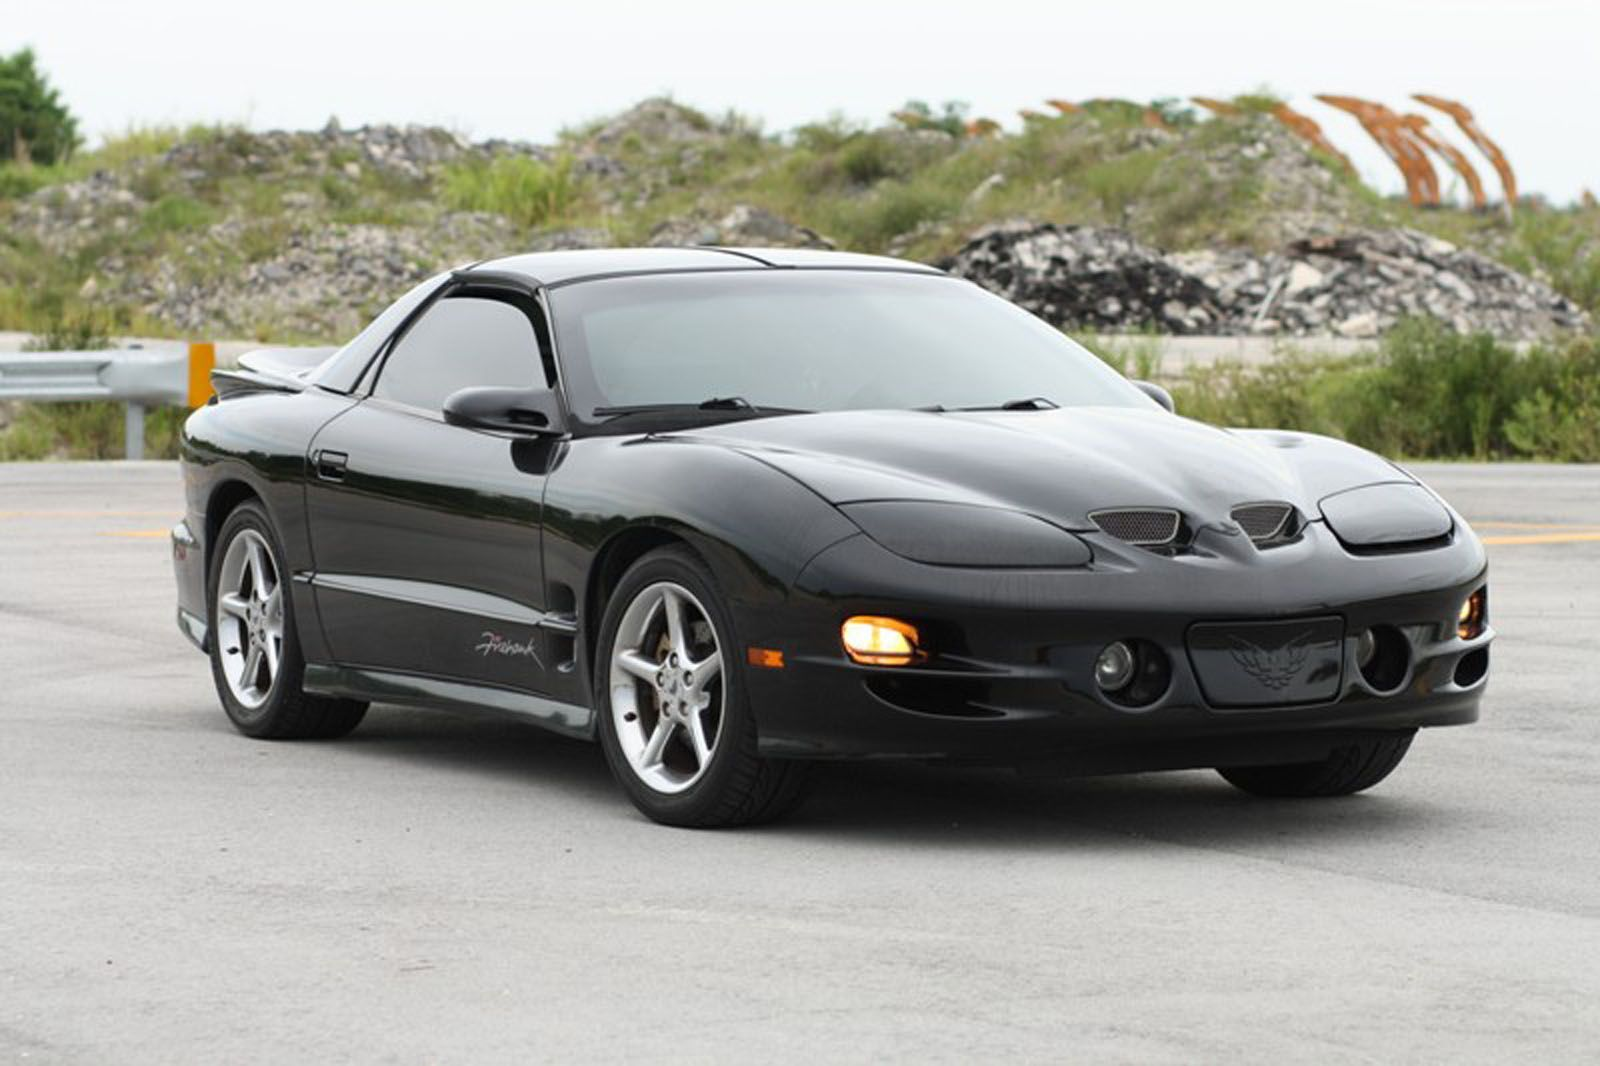 Very rare pontiac firehawk fast car always wanted one classic cars pinterest cars firebird and dream cars